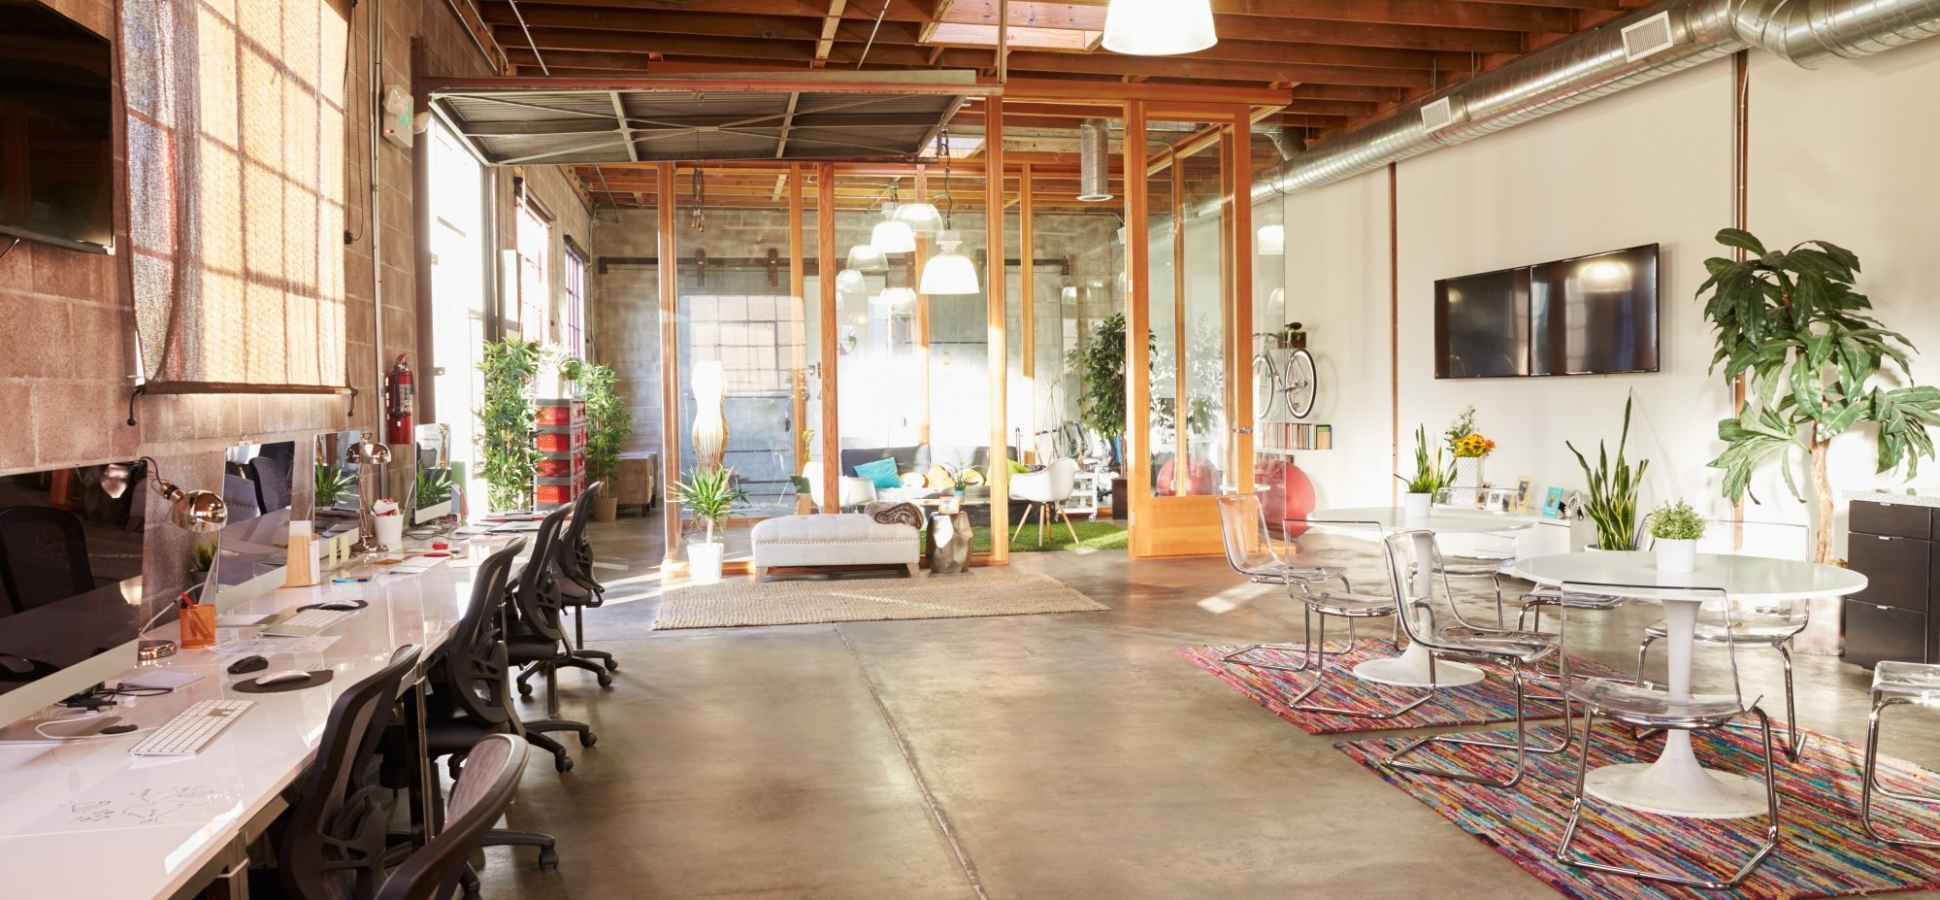 4 Changes You Need to Make to Your Office Now